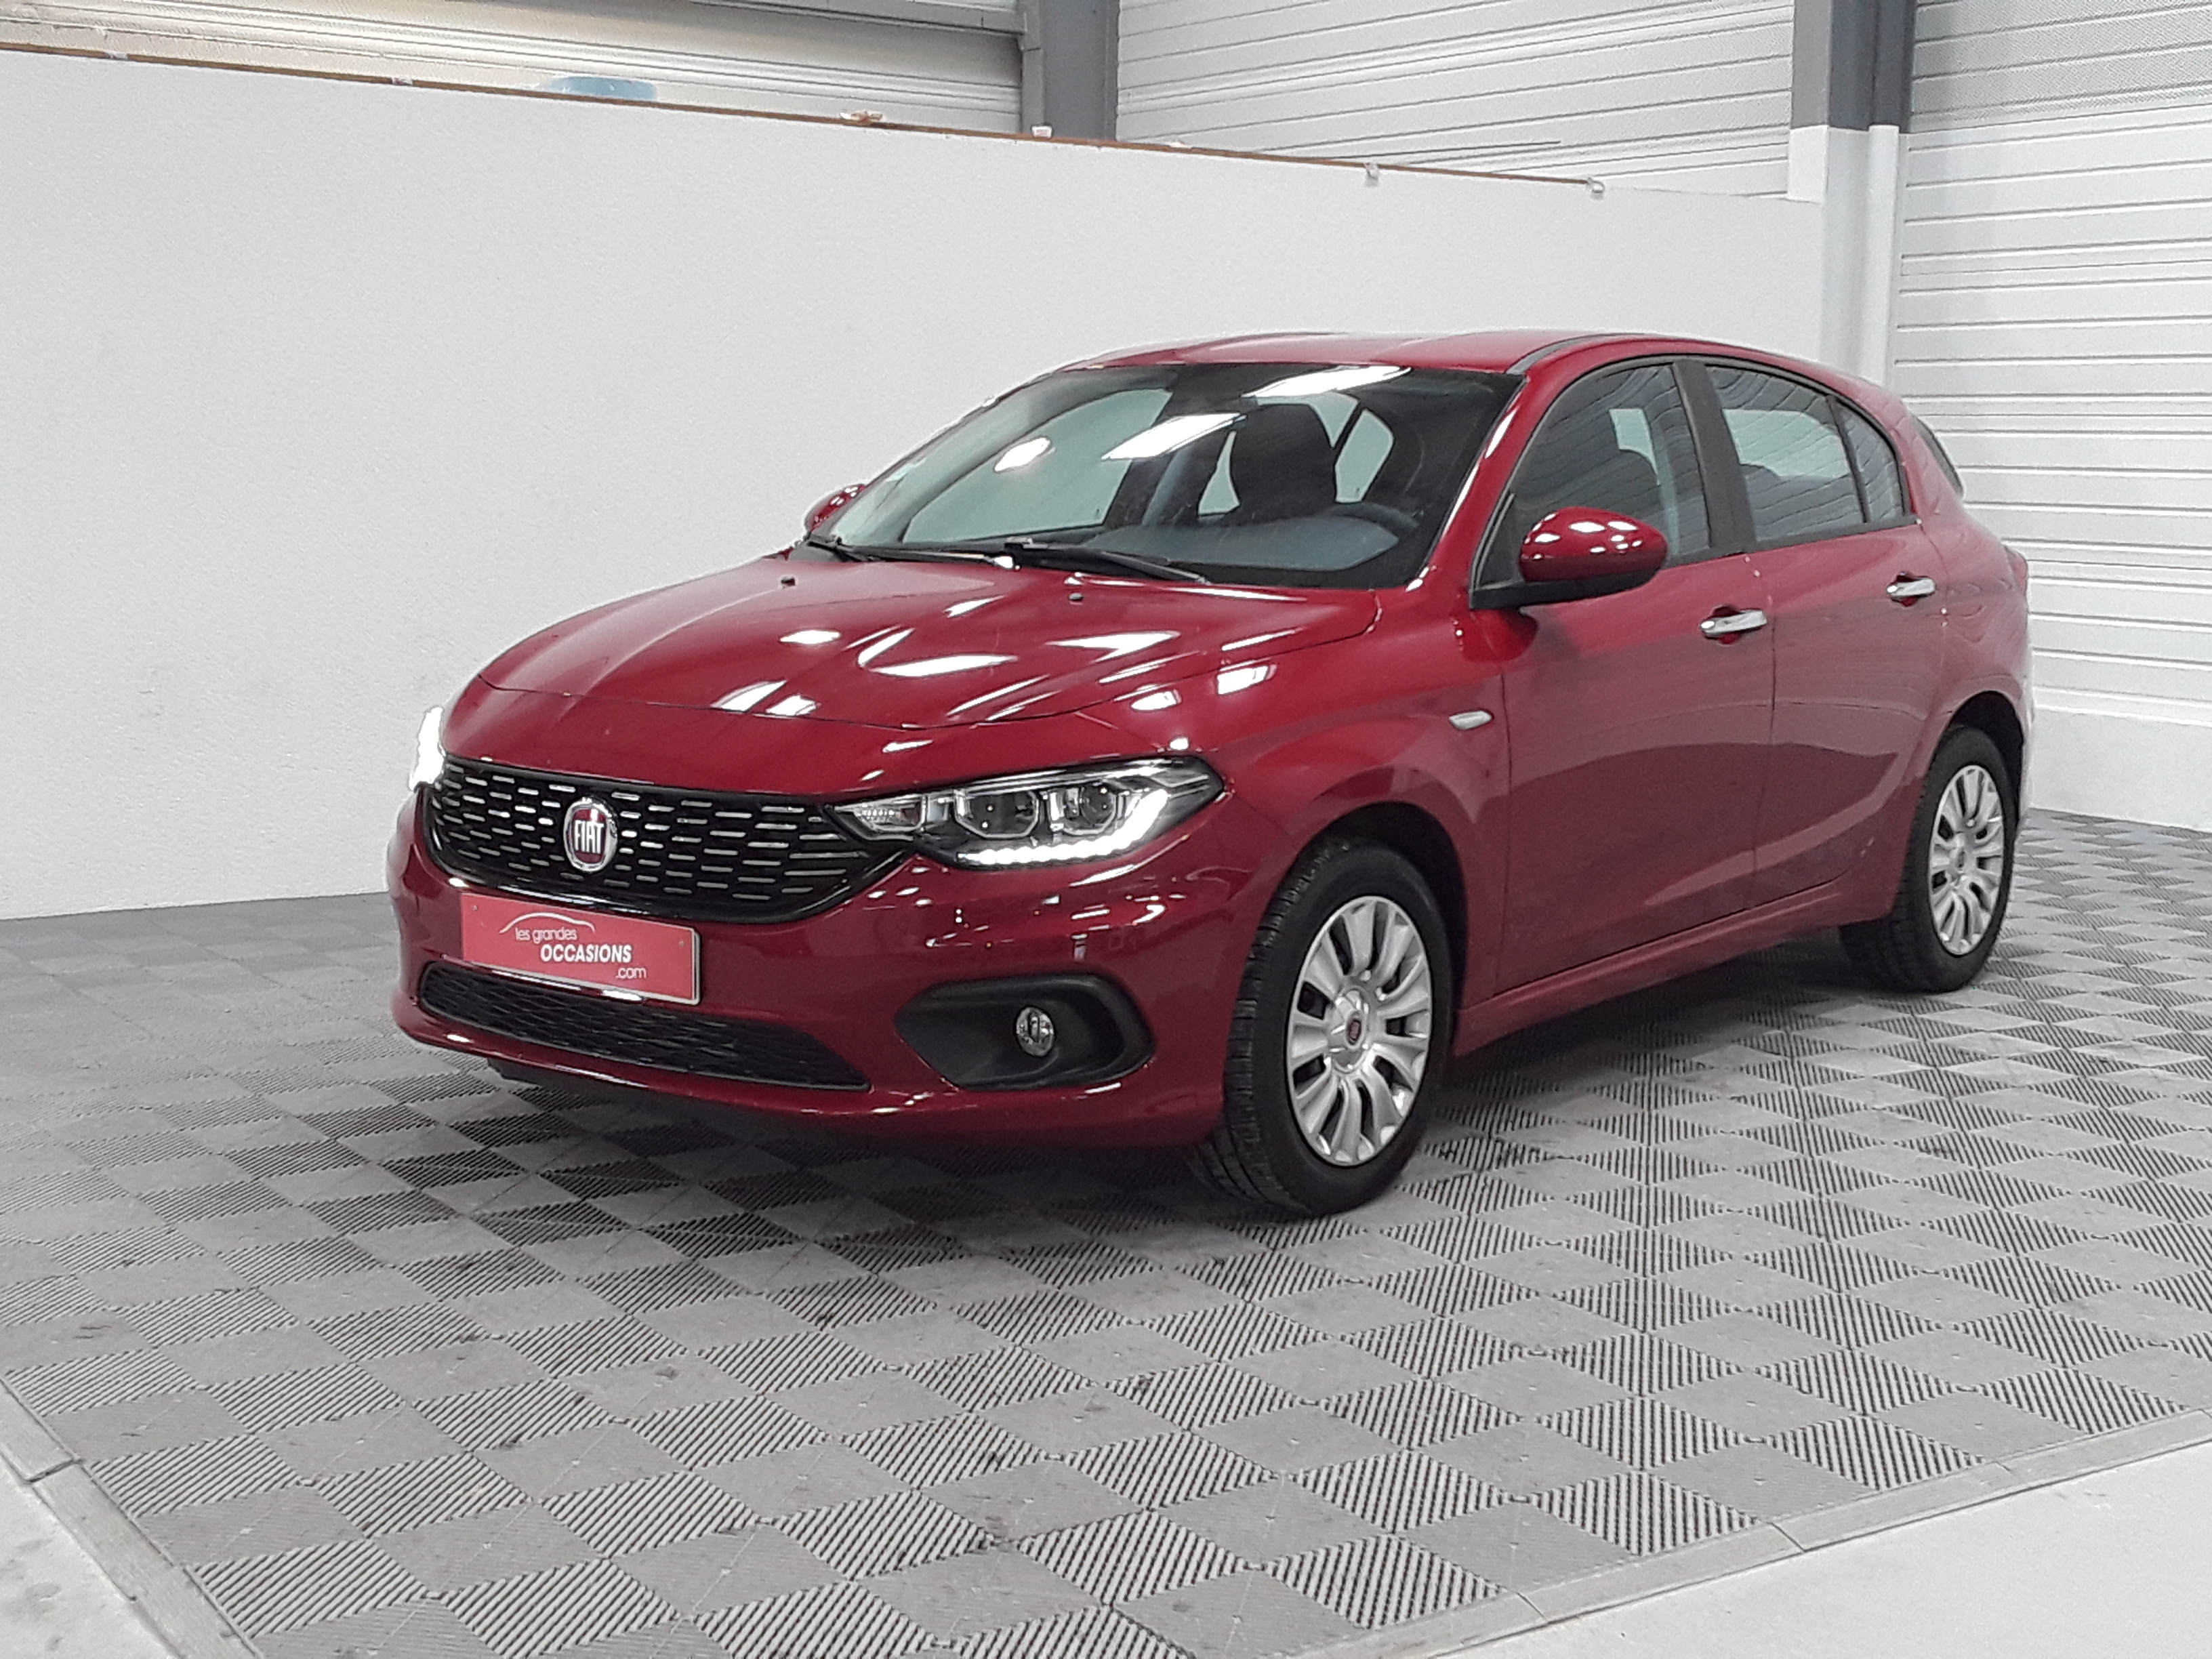 FIAT TIPO 5 PORTES 1.3 MultiJet 95 ch Start/Stop  d'occasion